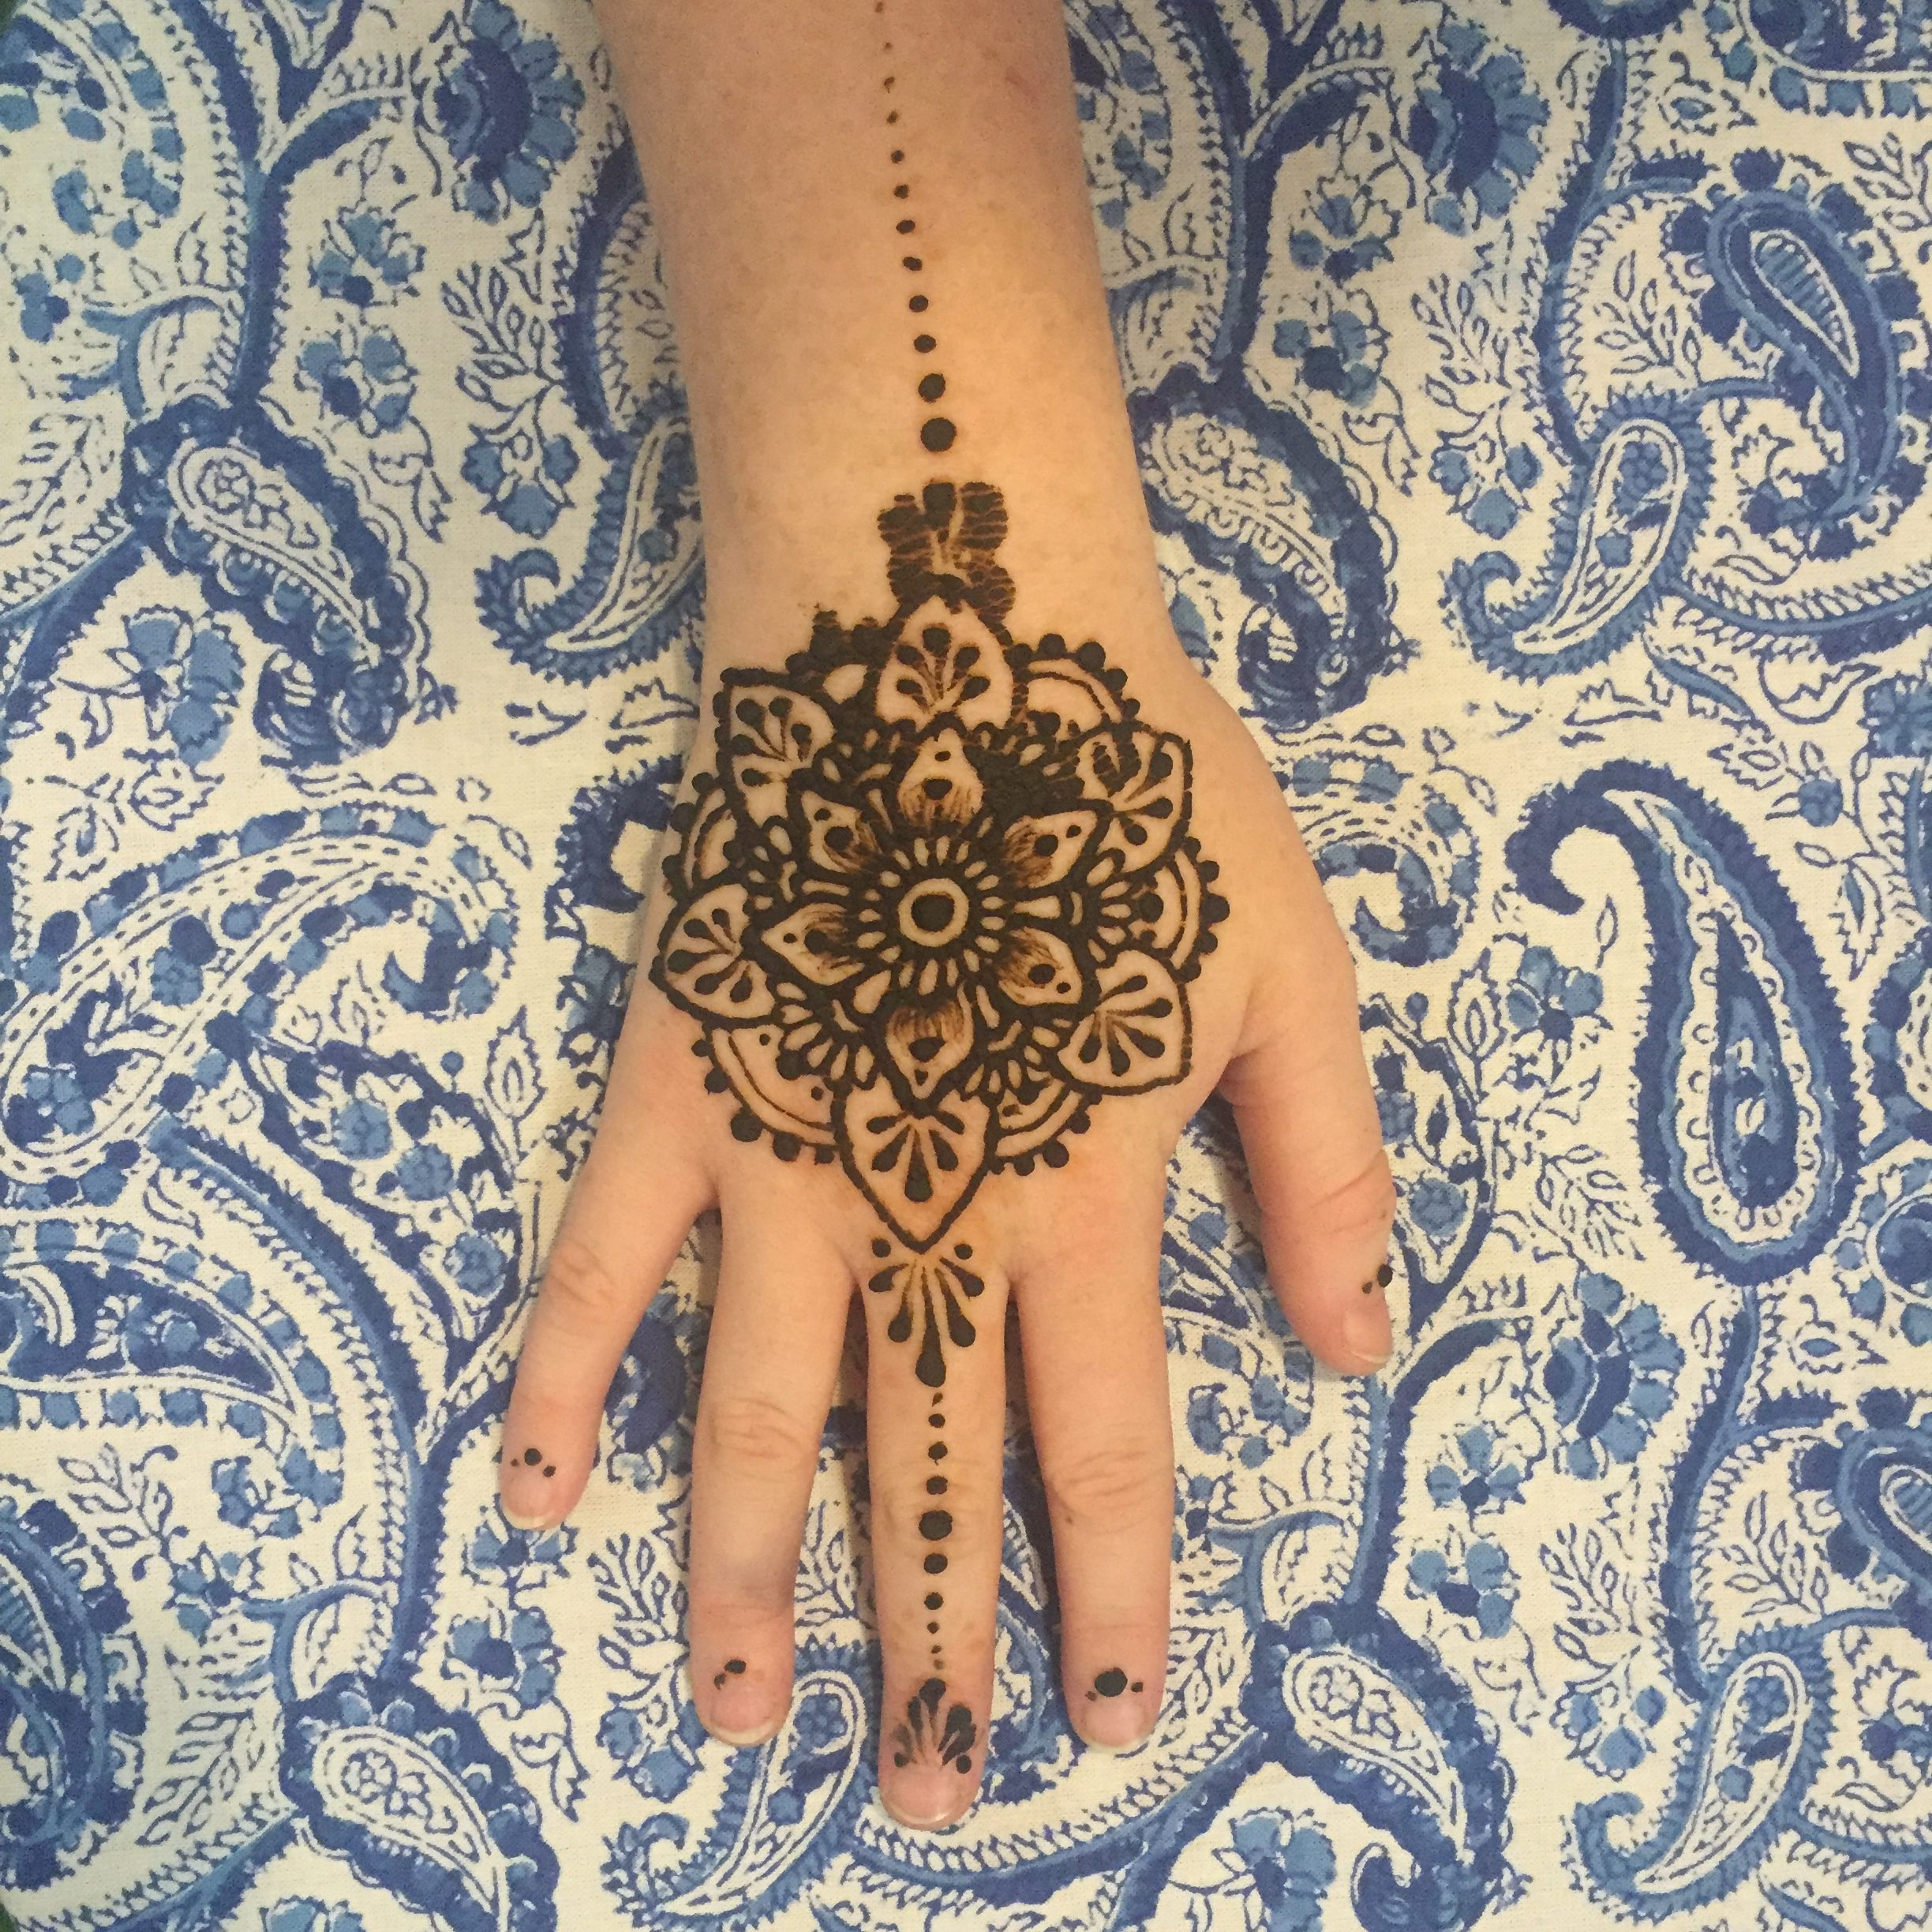 Henna And Tattoo Art: Henna Tattoos July 8th 5-8 With Ally